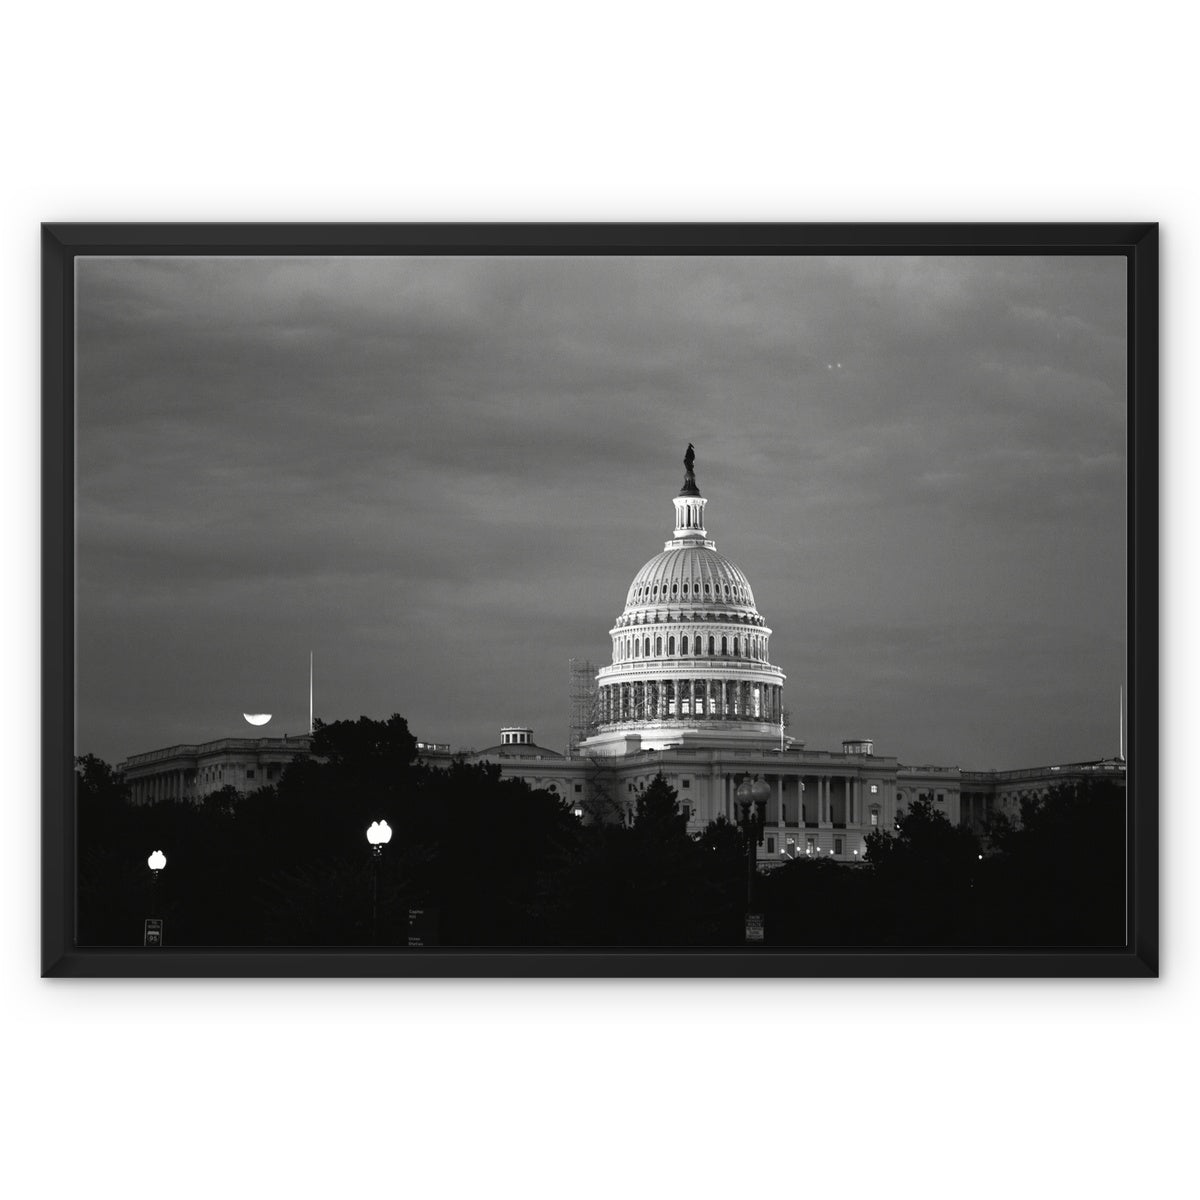 Capitol-01 Framed Canvas